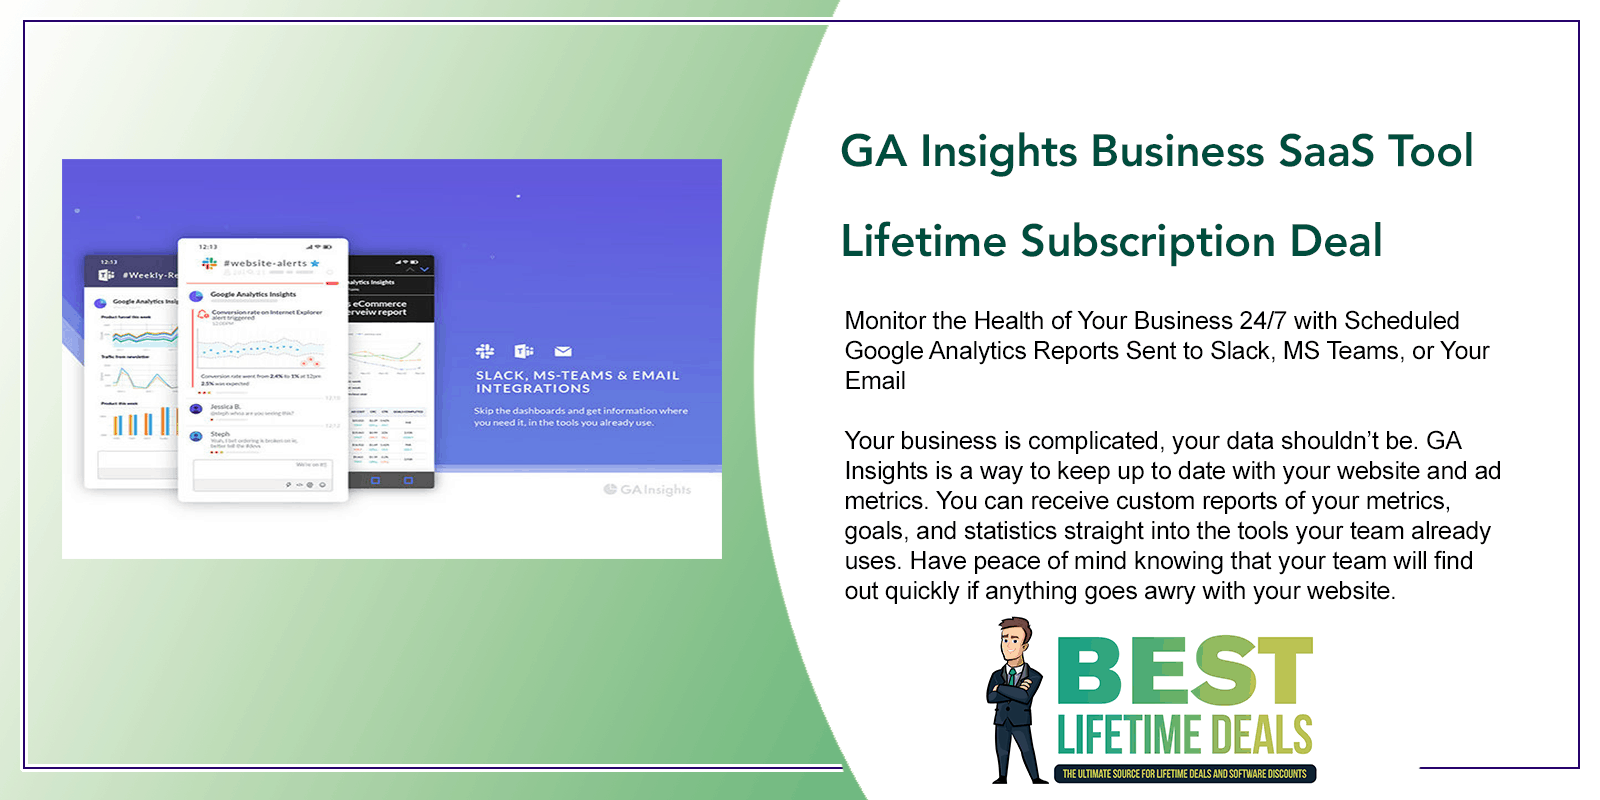 GA Insights Business SaaS Tool Featured Image